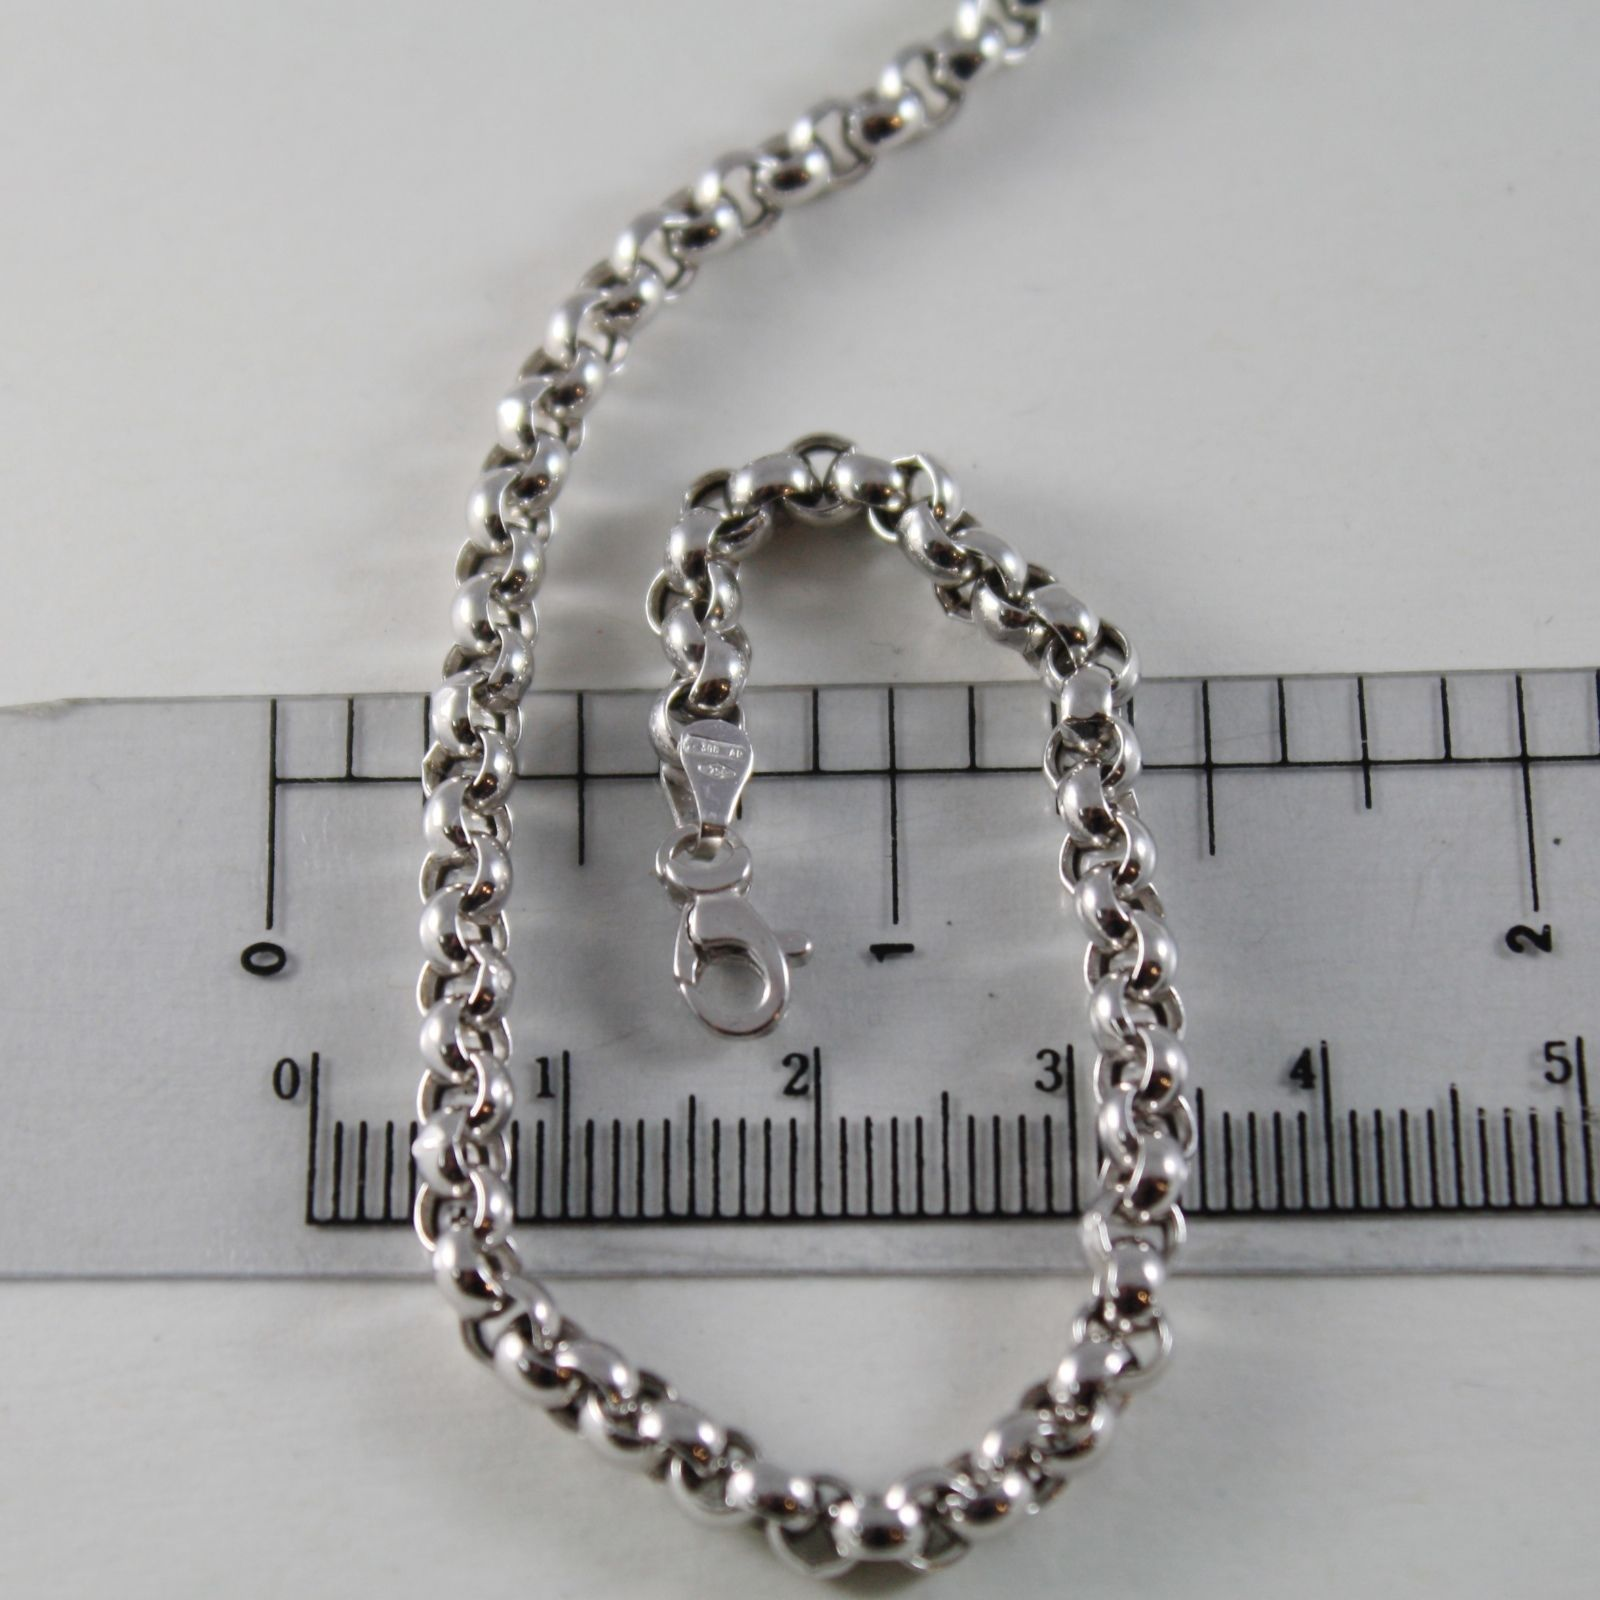 18K WHITE GOLD CHAIN 17.70 IN, BIG ROUND CIRCLE ROLO LINK, 4 MM MADE IN ITALY